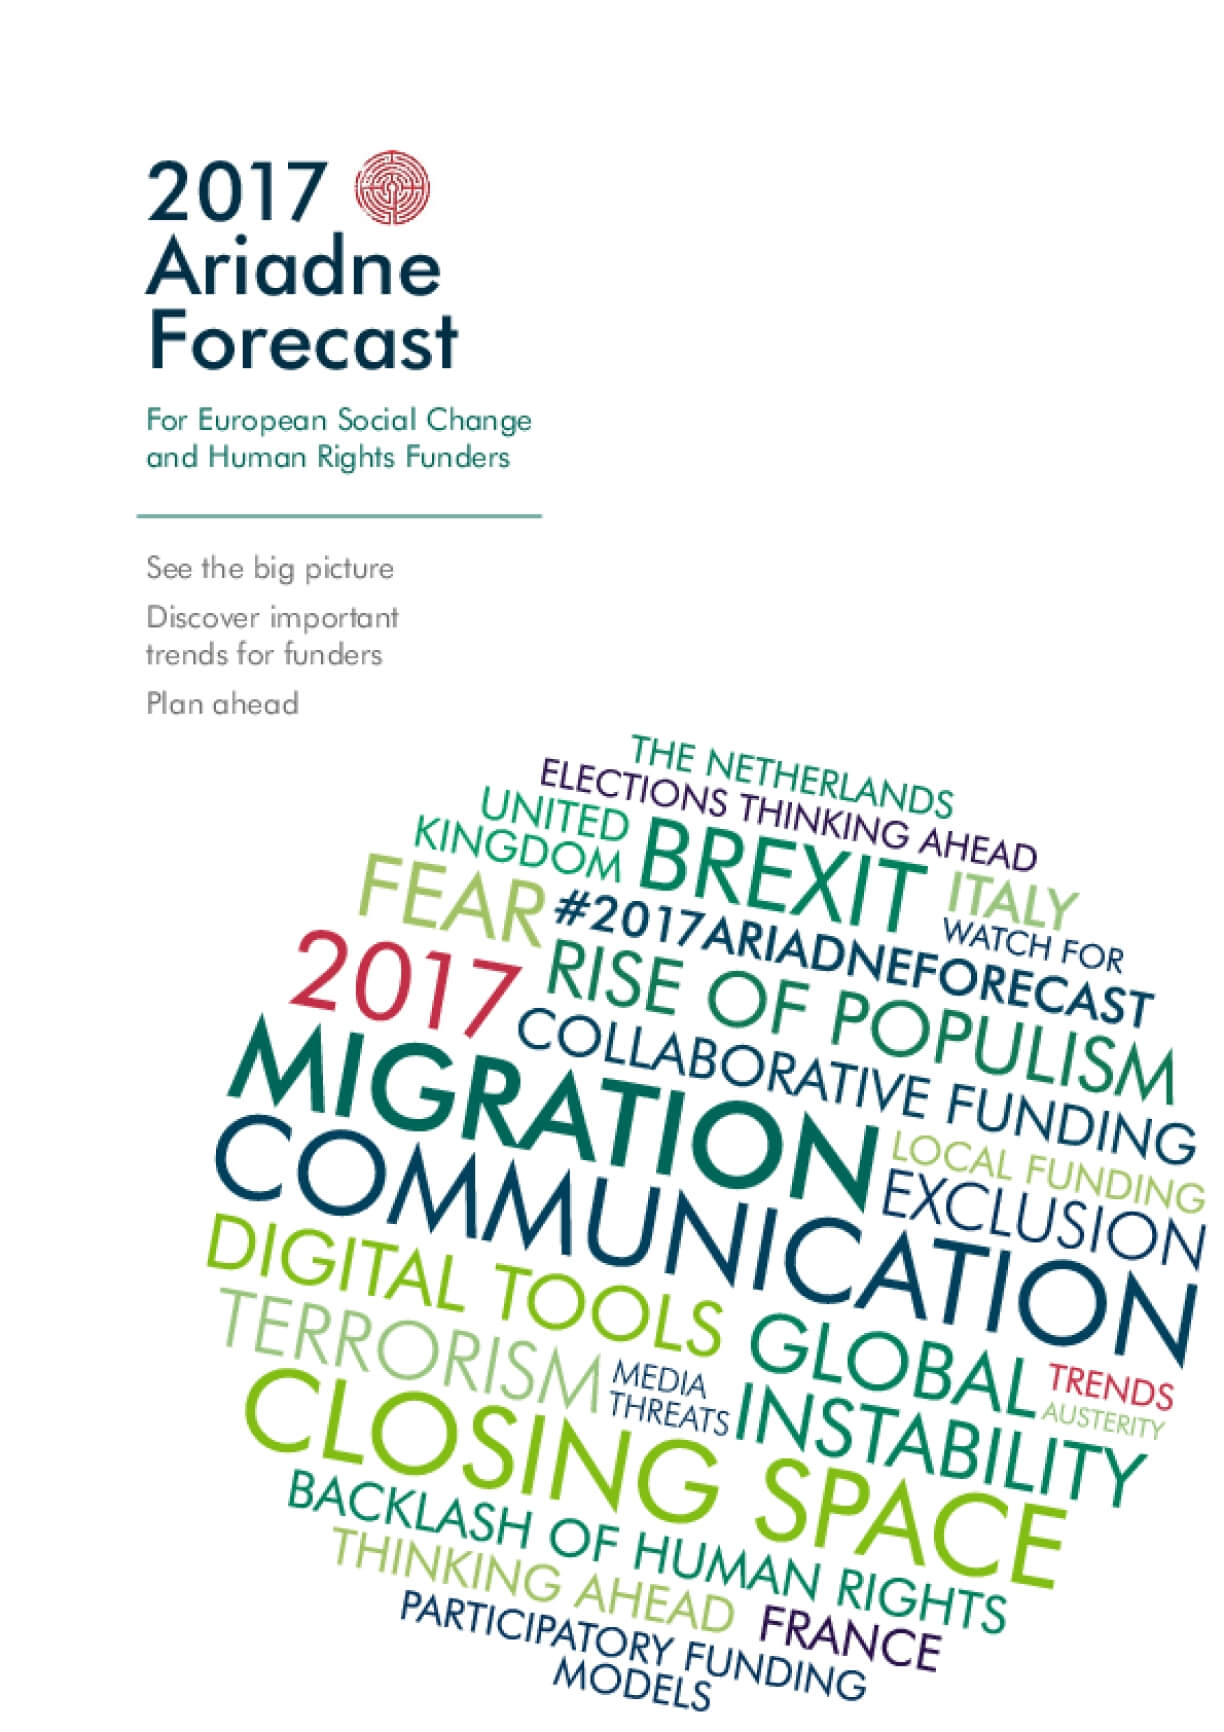 2017 Ariadne Forecast For European Social Change and Human Rights Funders